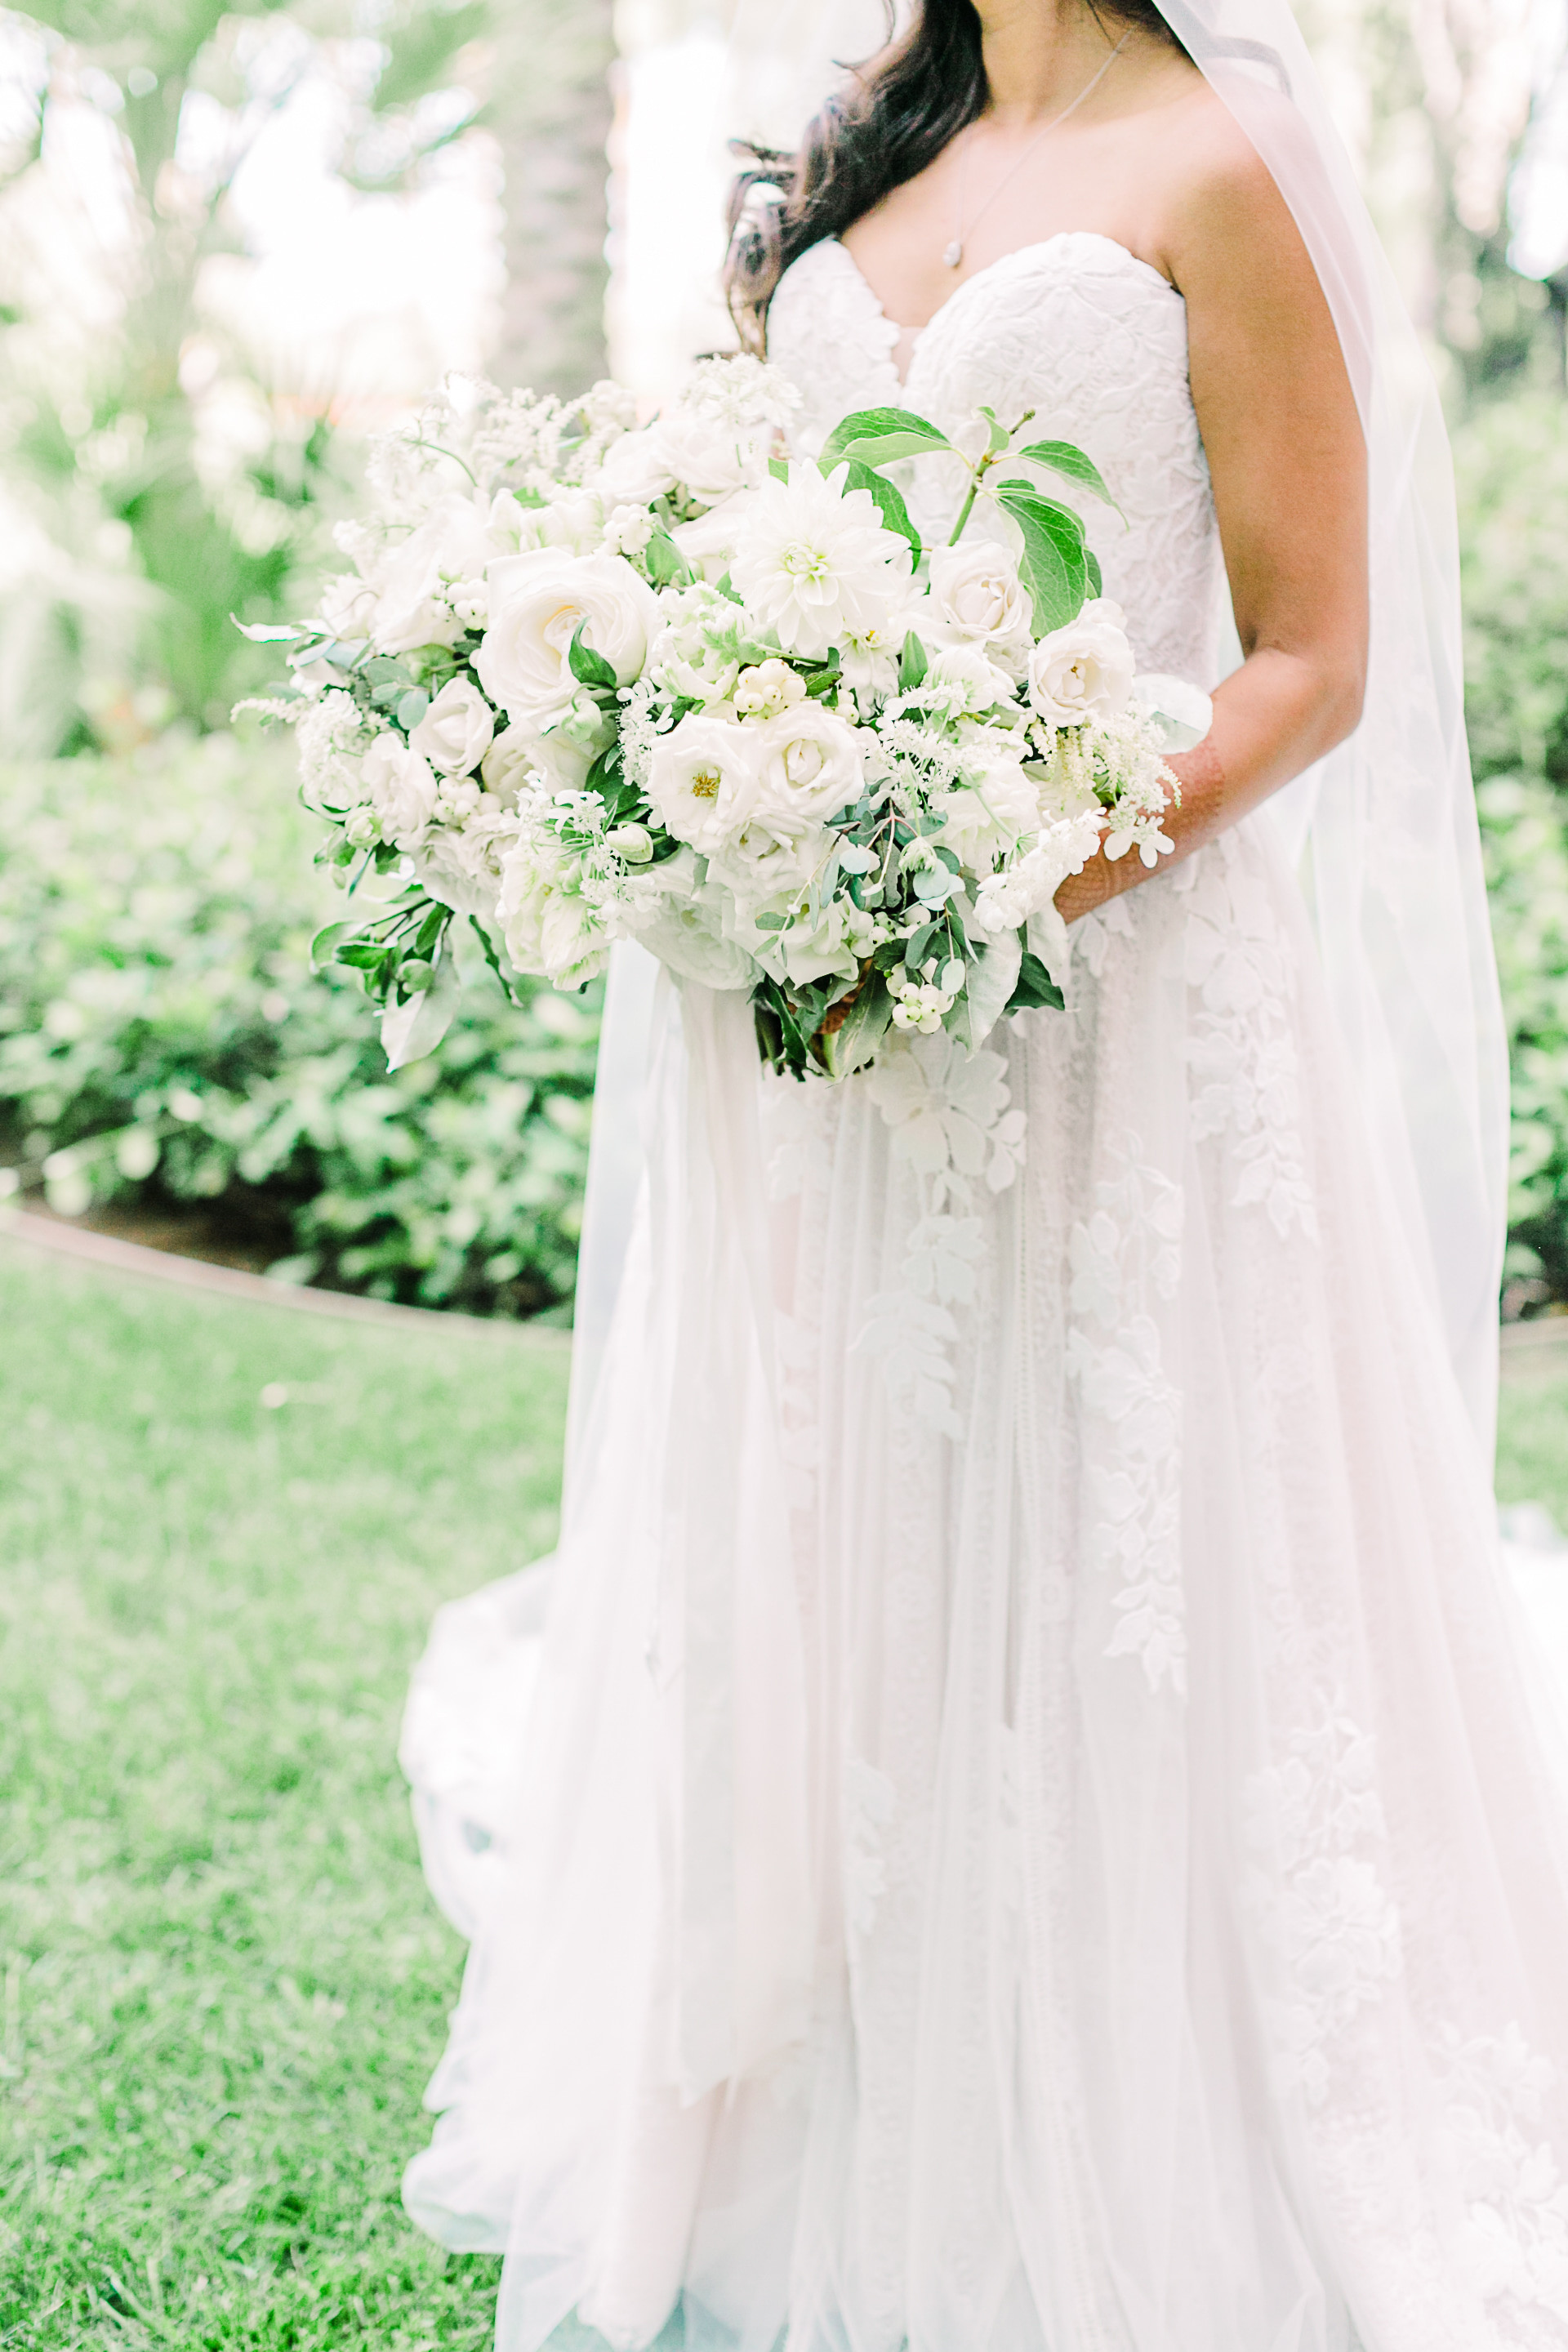 Garden-style bridal bouquet with roses, dahlias, berries, and hellebore. Photo: Kristen Joy